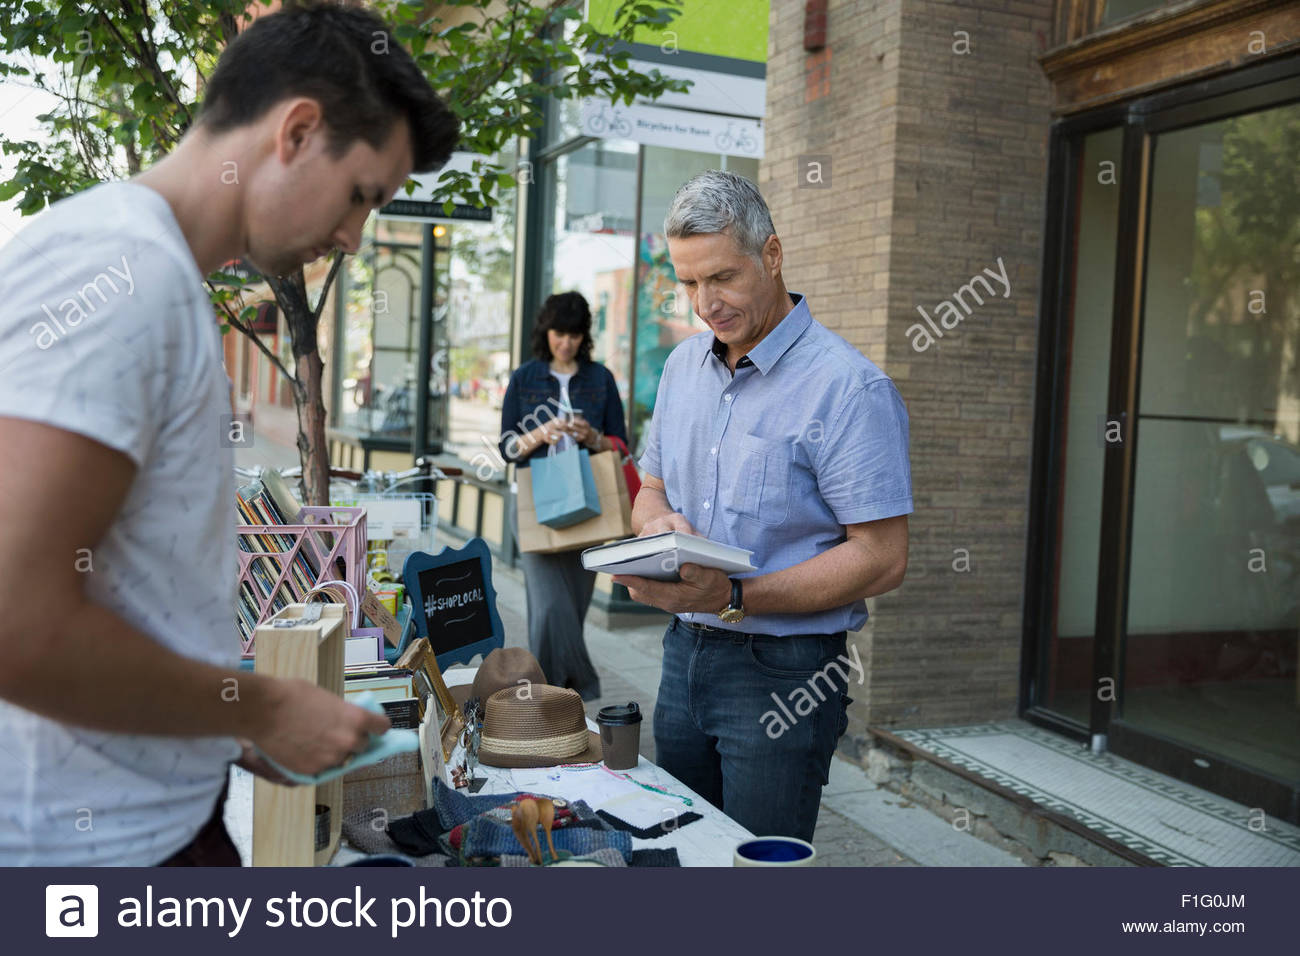 Man browsing book at sidewalk sale - Stock Image